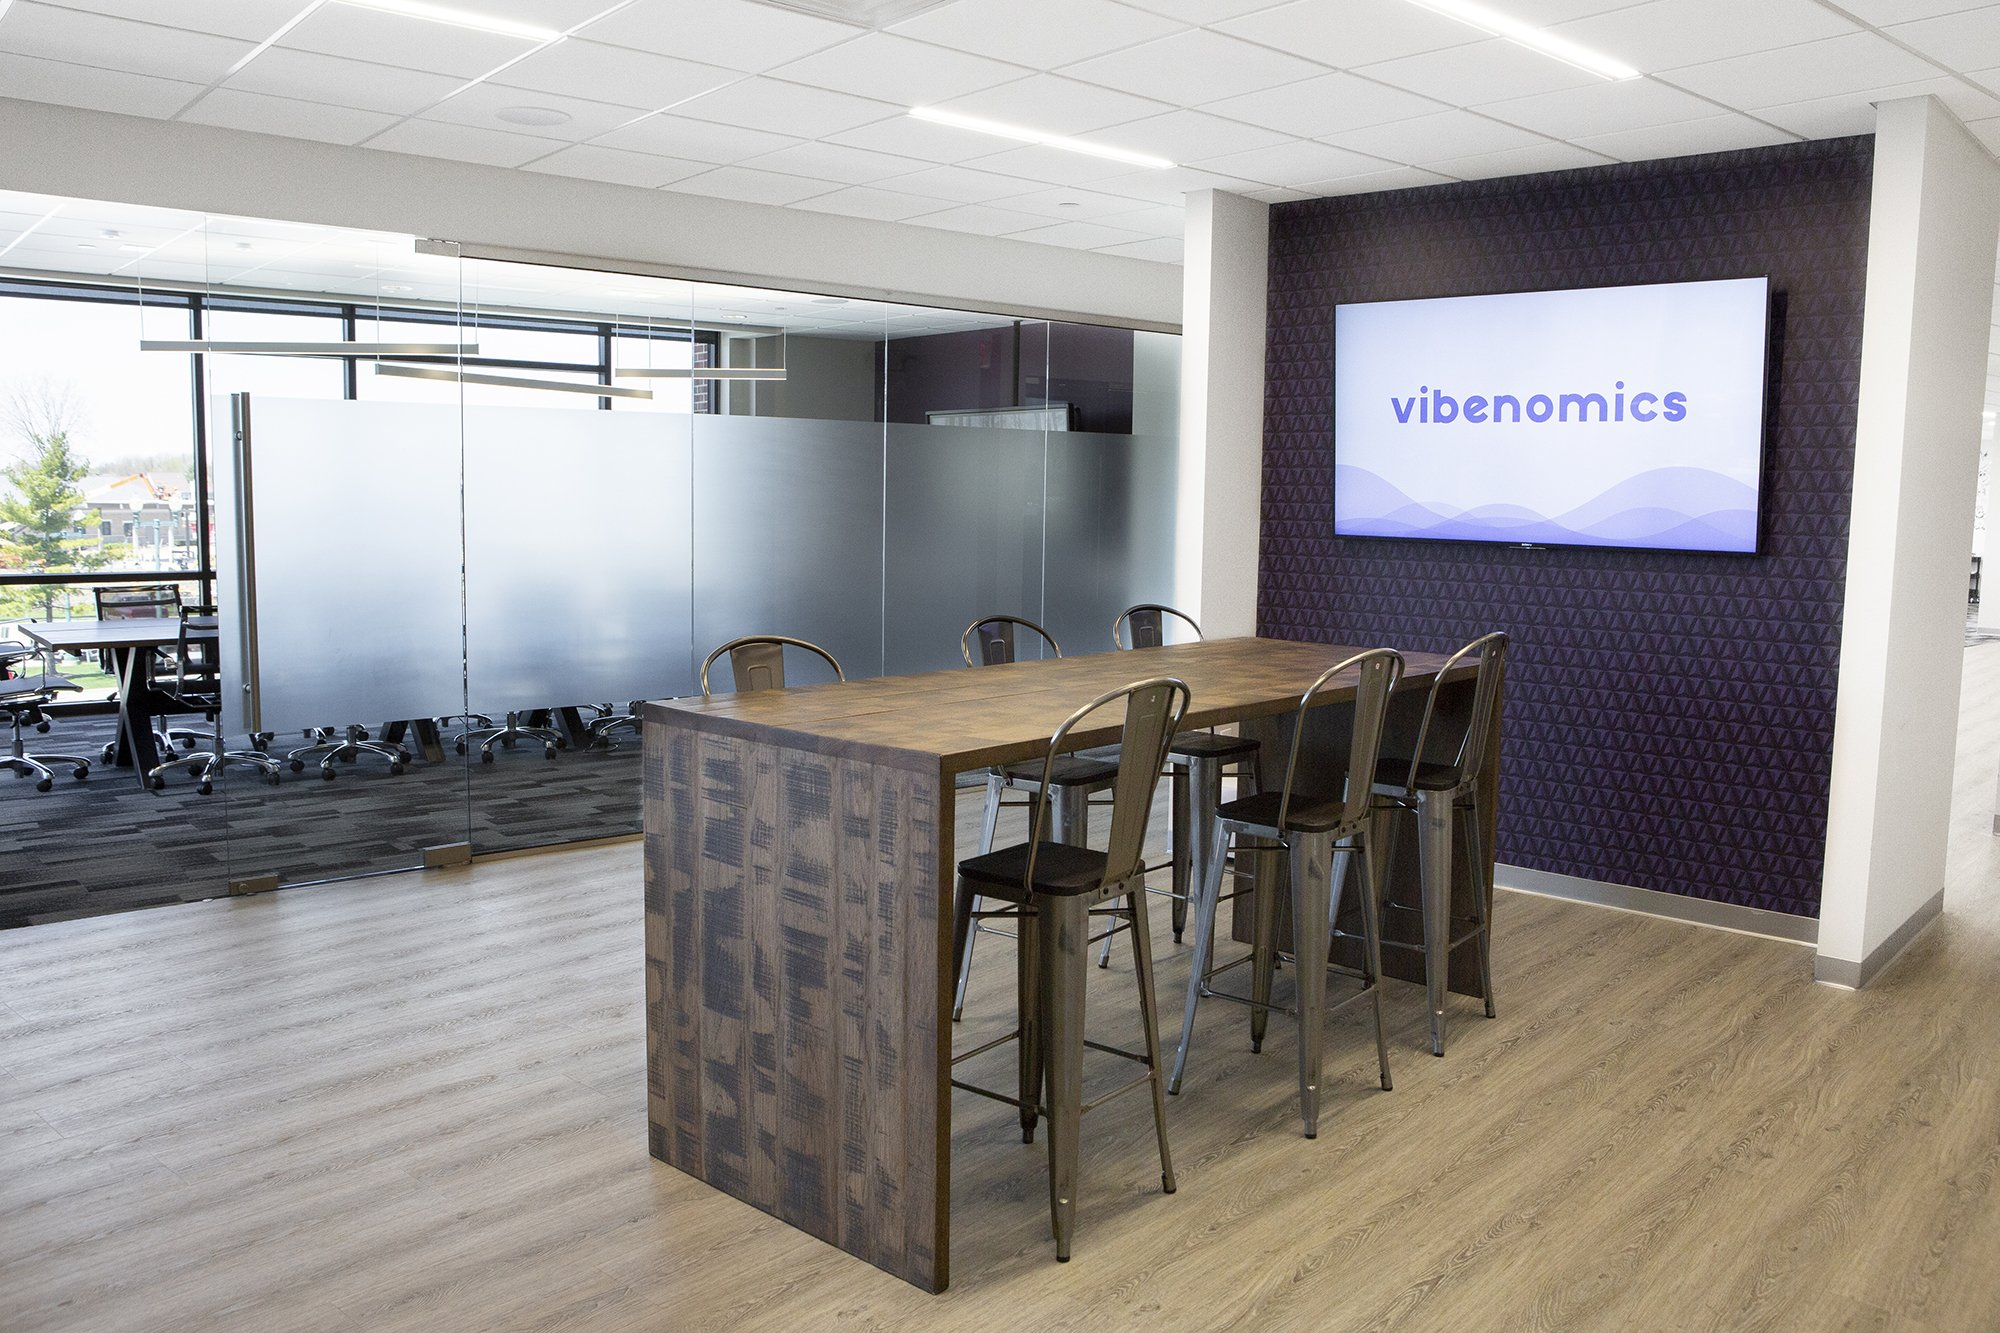 lauth-group-vibenomics-office-design-brand-identity-indianapolis-indiana-10